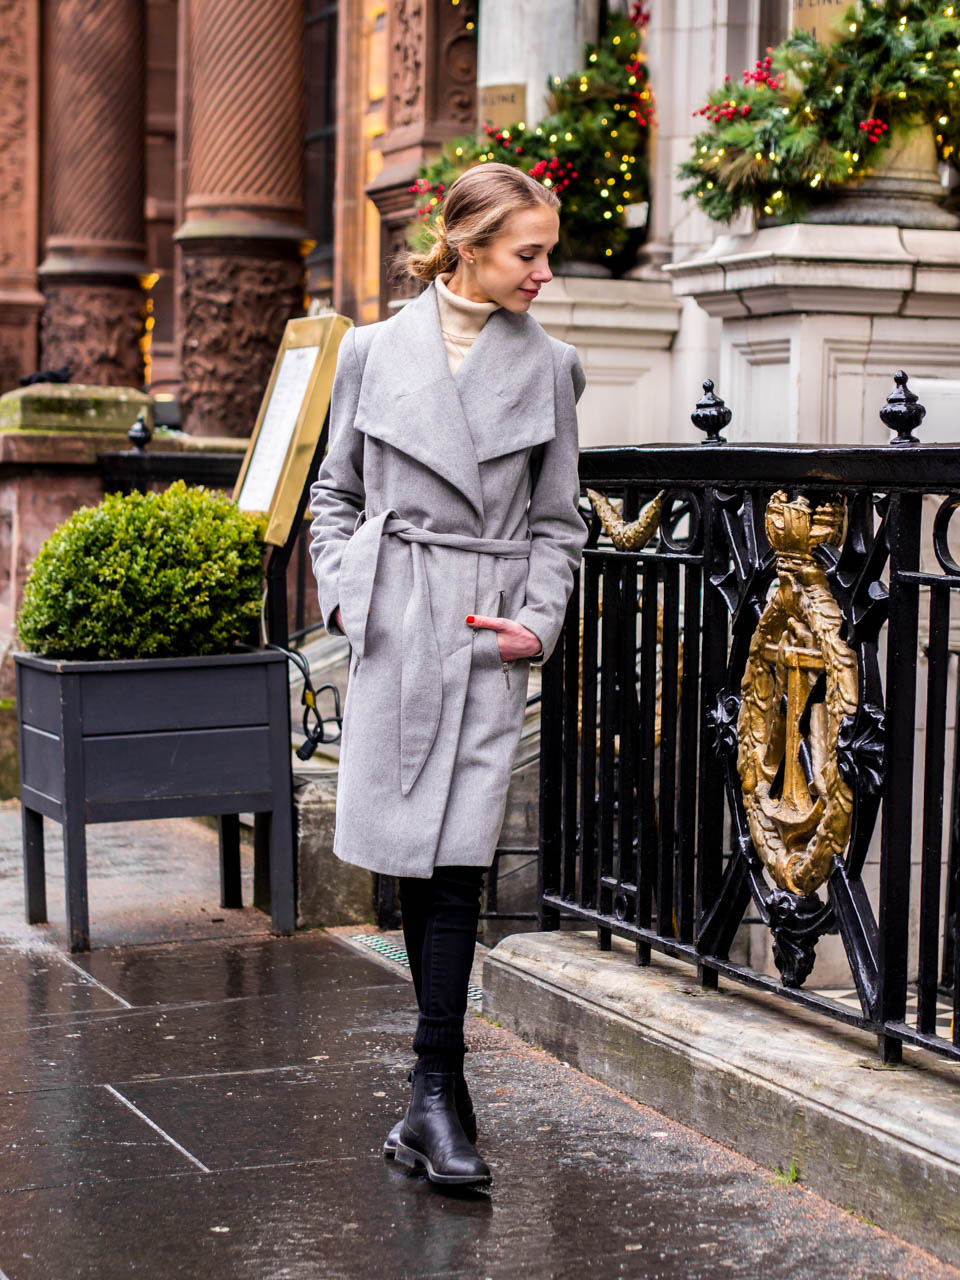 Minimal chic winter outfit inspiration with grey wool coat - Minimalistinen talvimuoti + harmaa villakangastakki